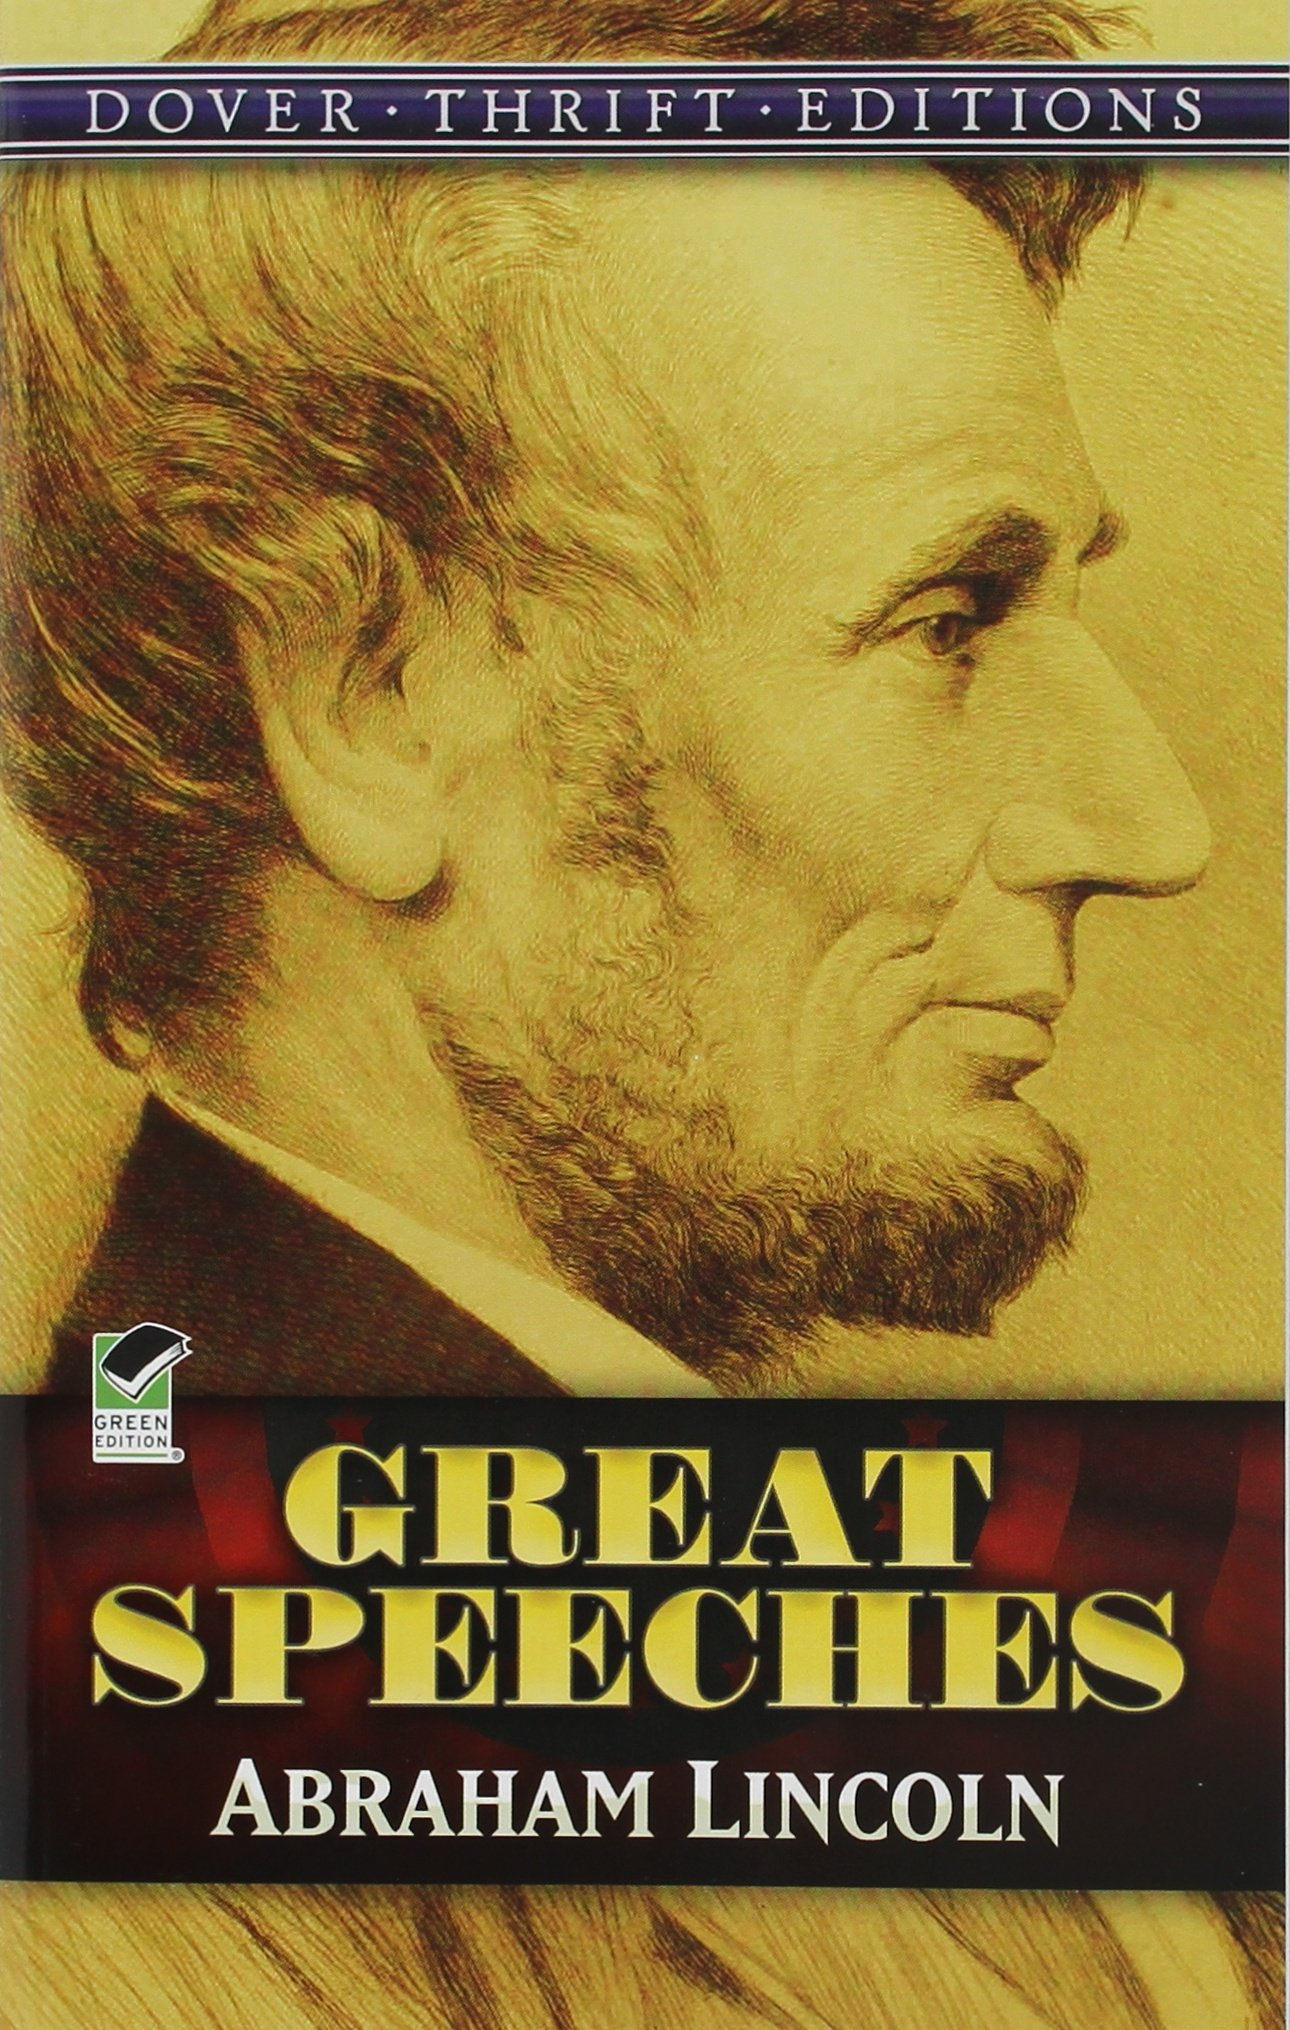 abraham lincoln great speeches dover thrift editions abraham abraham lincoln great speeches dover thrift editions abraham lincoln roy p basler john grafton 9780486268729 com books